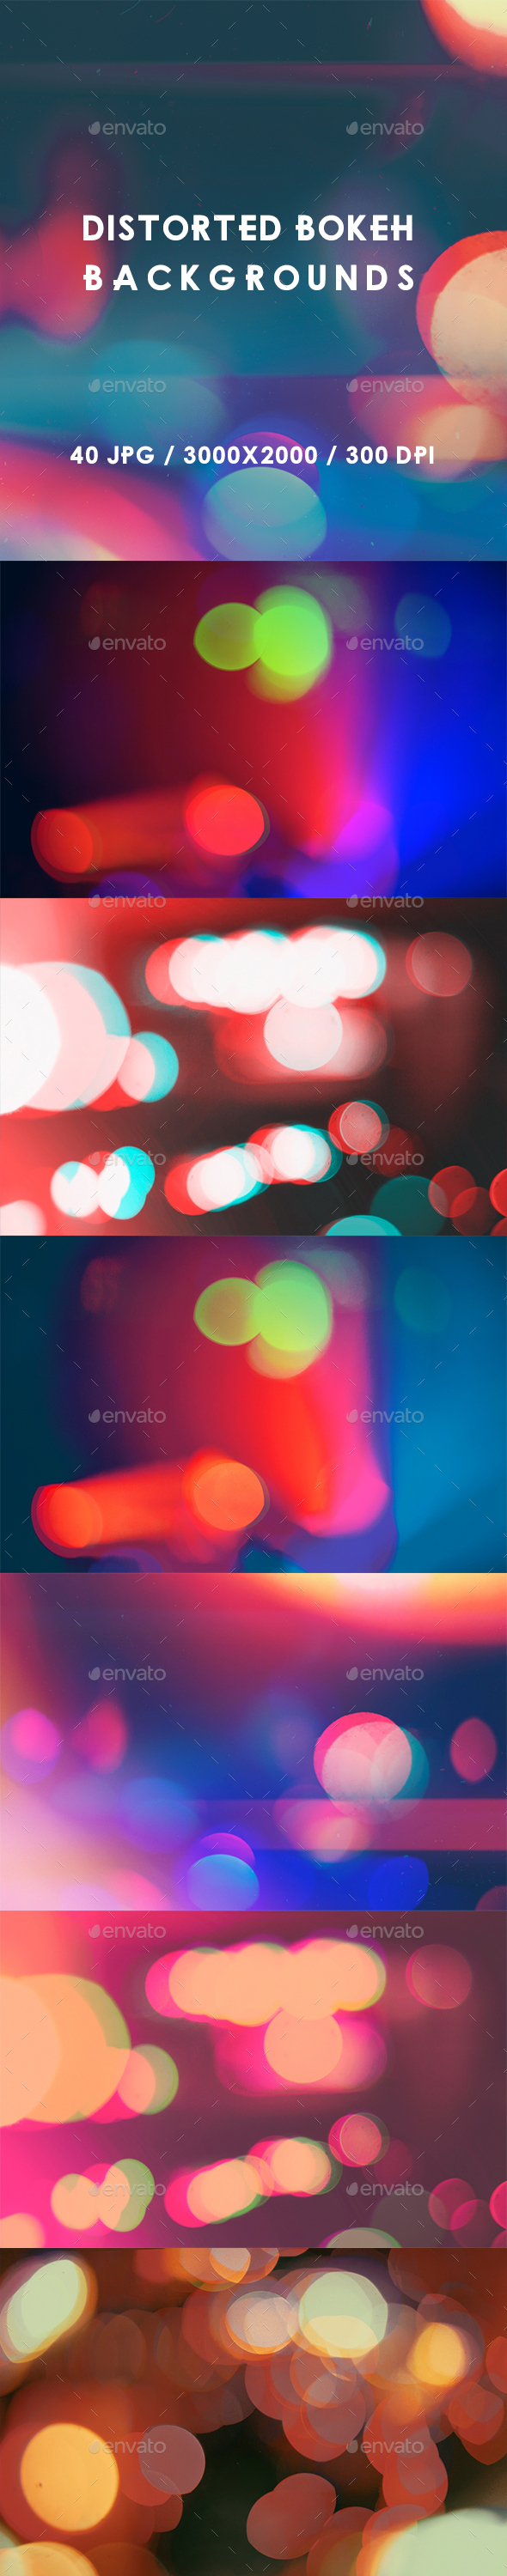 40 Distorted Bokeh Backgrounds - Abstract Backgrounds